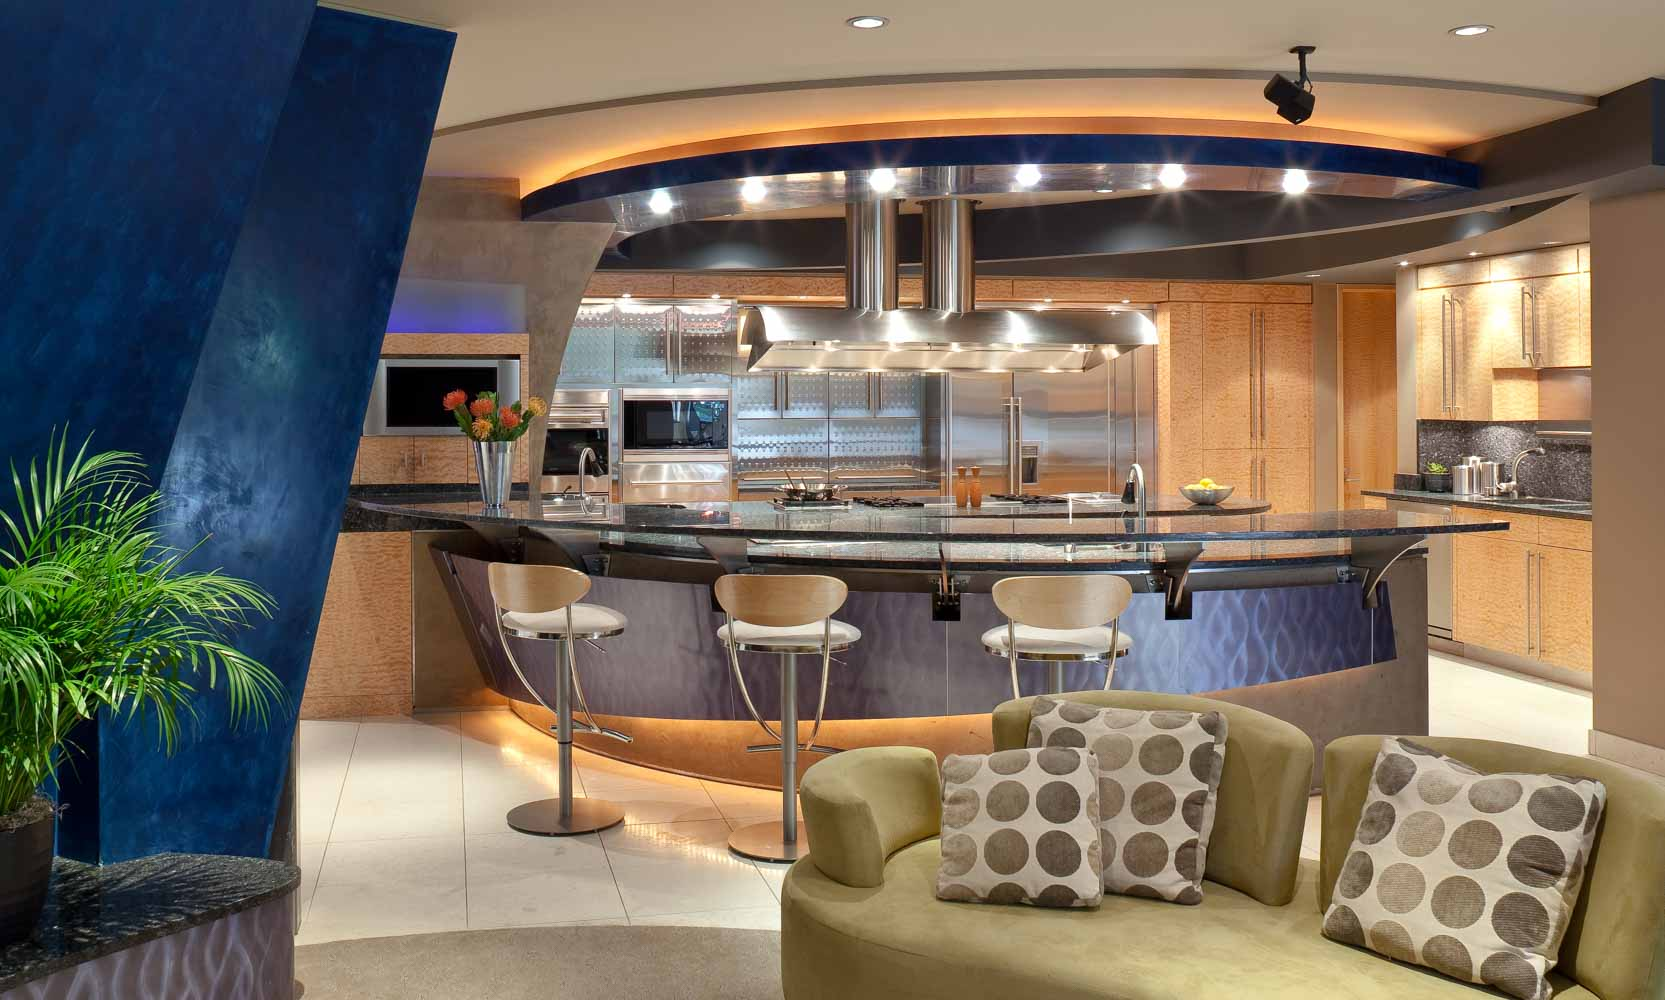 Arteriors Architects Minneapolis Minnesota Ultra Modern High Tech Kitchen